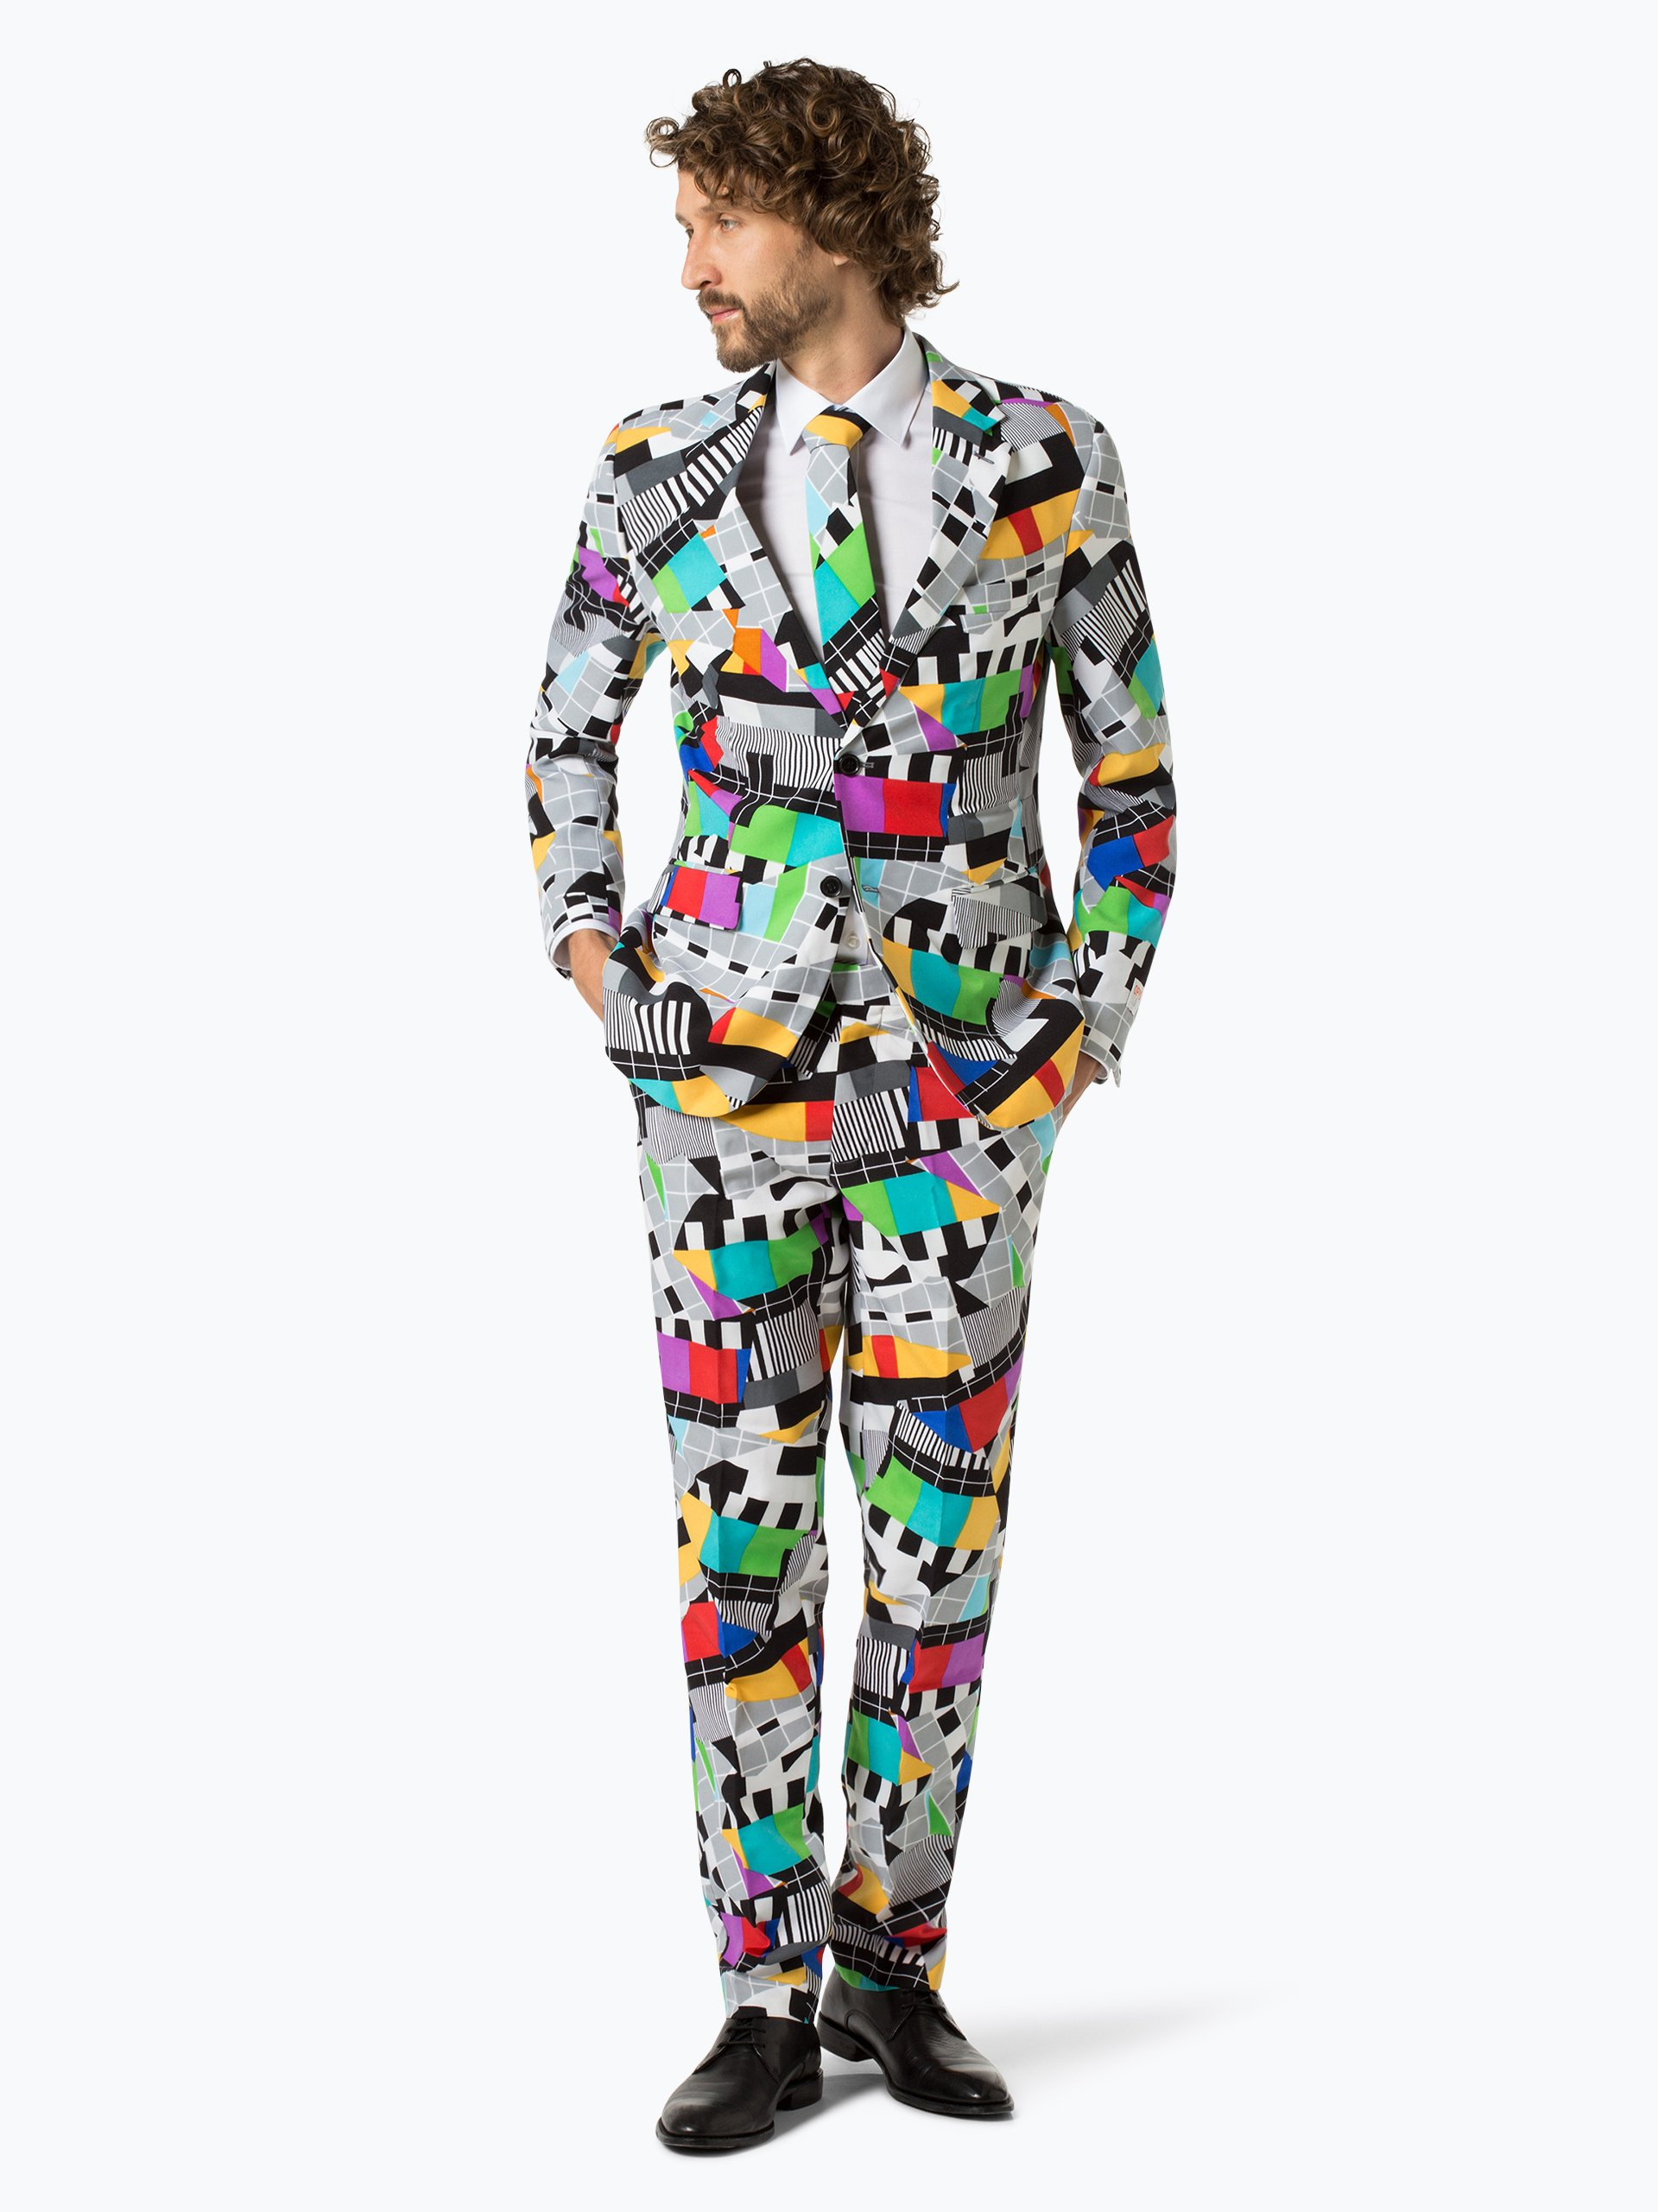 opposuits herren anzug mit krawatte grau gemustert online. Black Bedroom Furniture Sets. Home Design Ideas